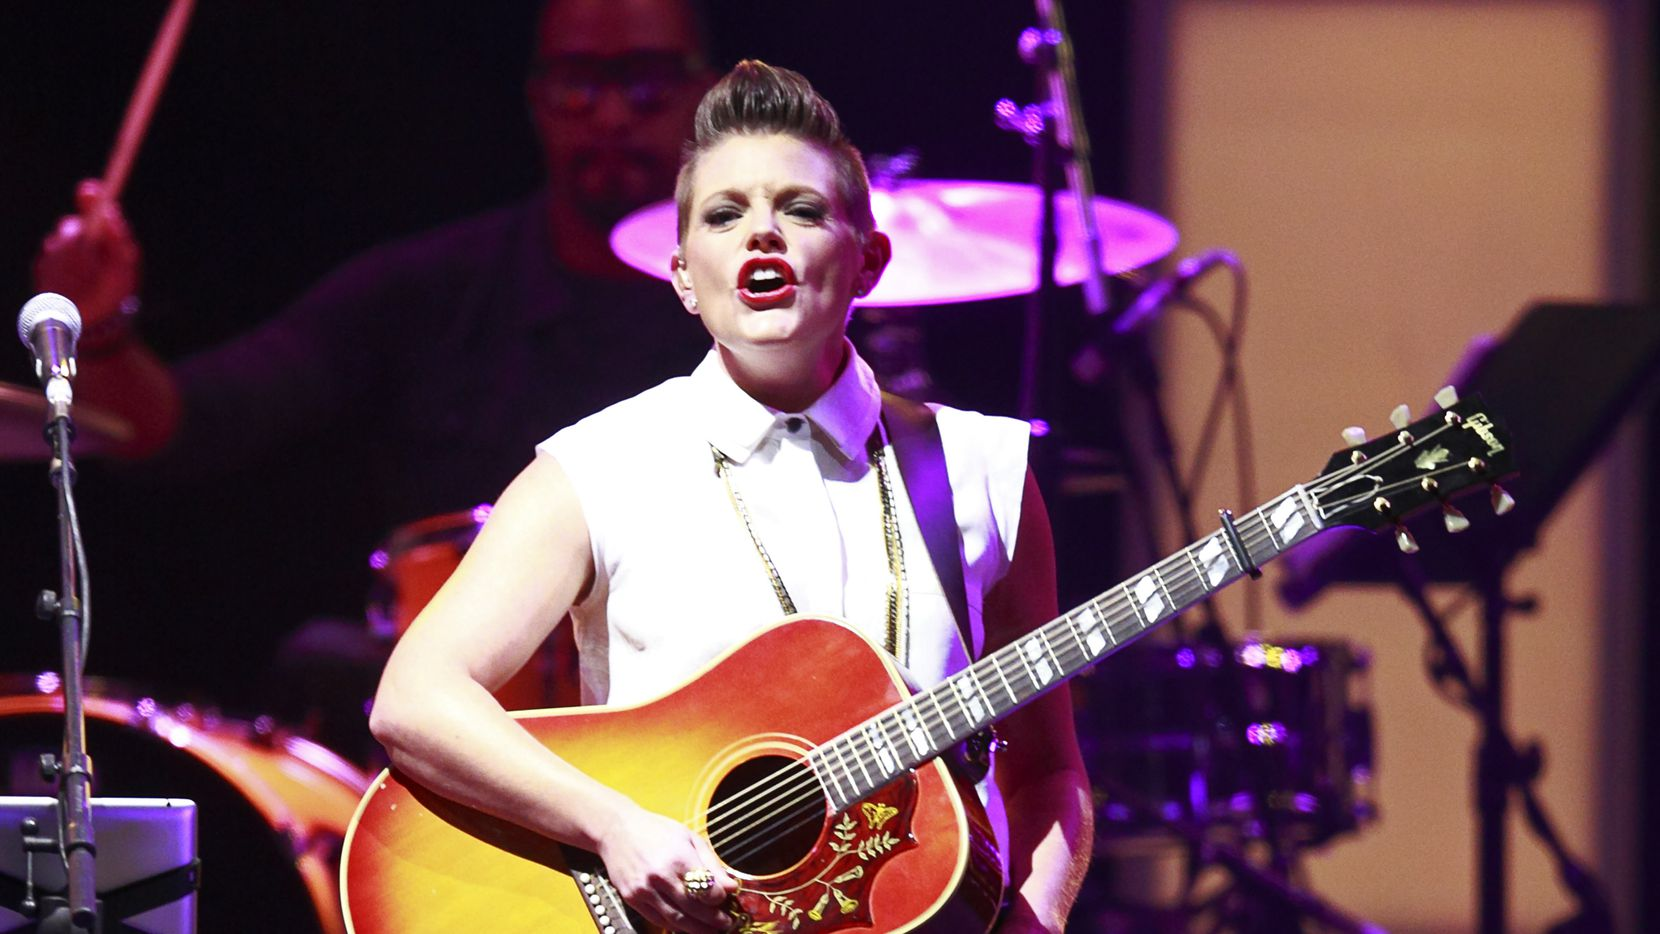 VANCOUVER, BC - OCTOBER 26:  Natalie Maines of the Dixie Chicks performs during the first show of their Long Time Gone tour at Rogers Arena on October 26, 2013 in Vancouver, British Columbia, Canada.